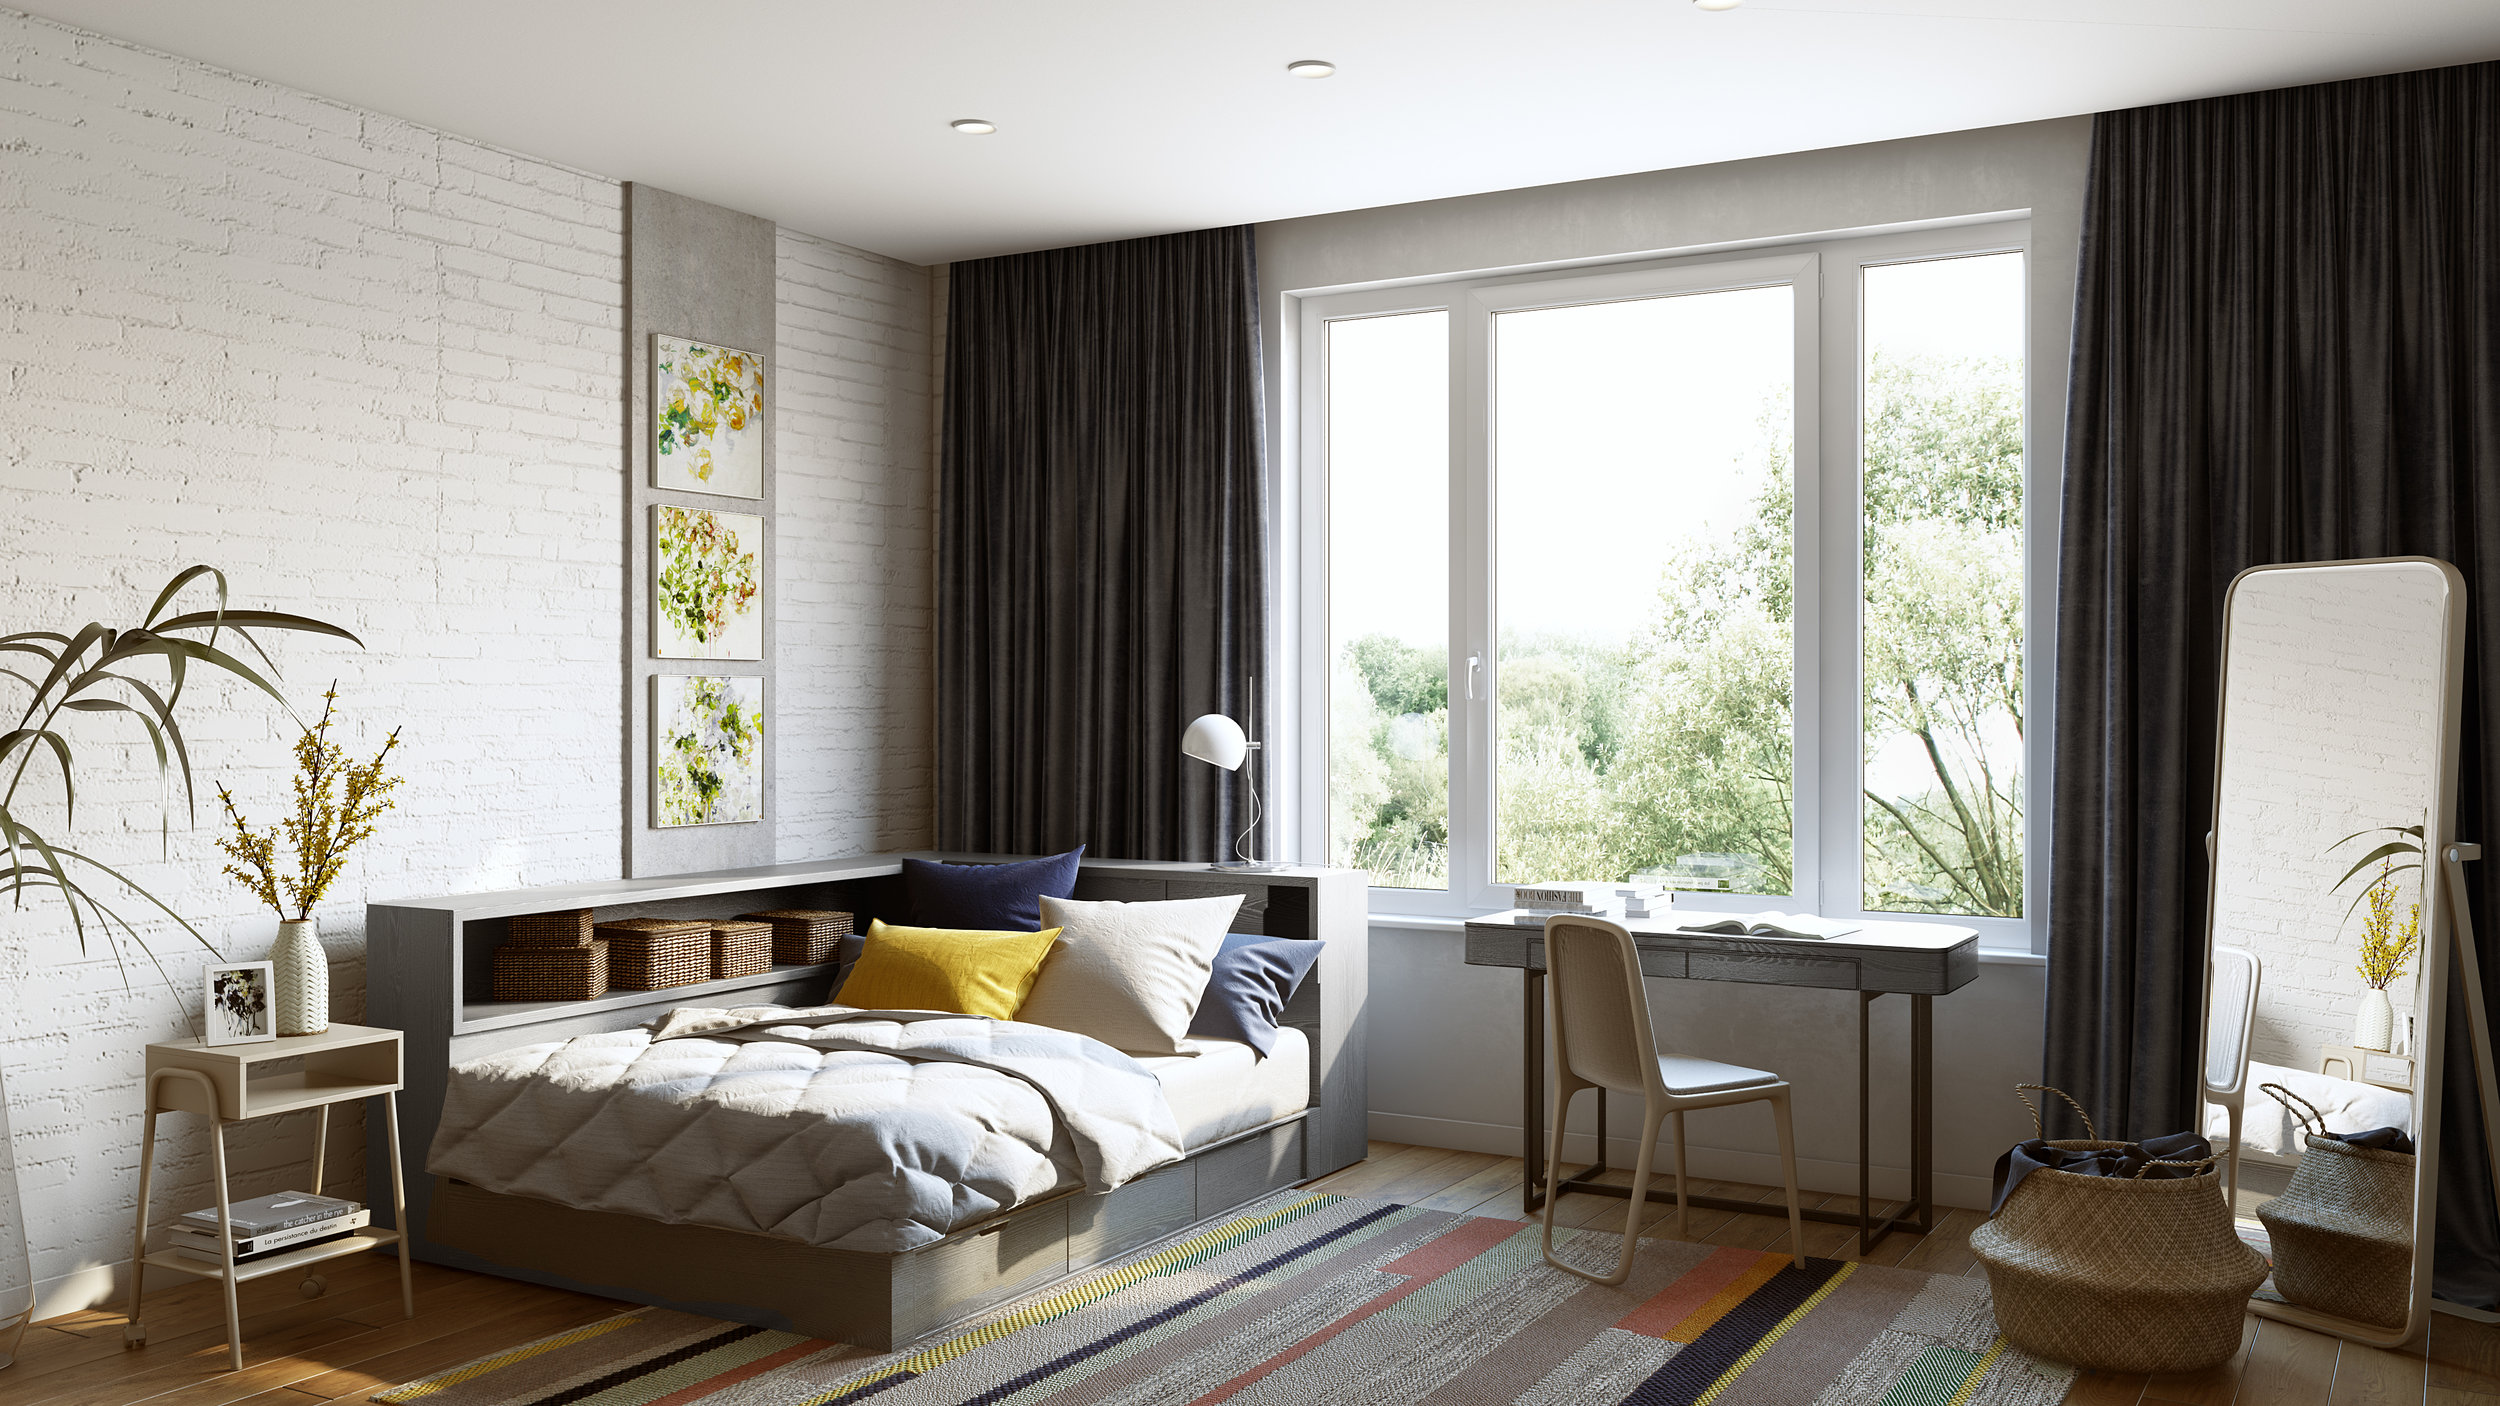 Complex Lifestyle Perspective, Lounge Style Bedroom